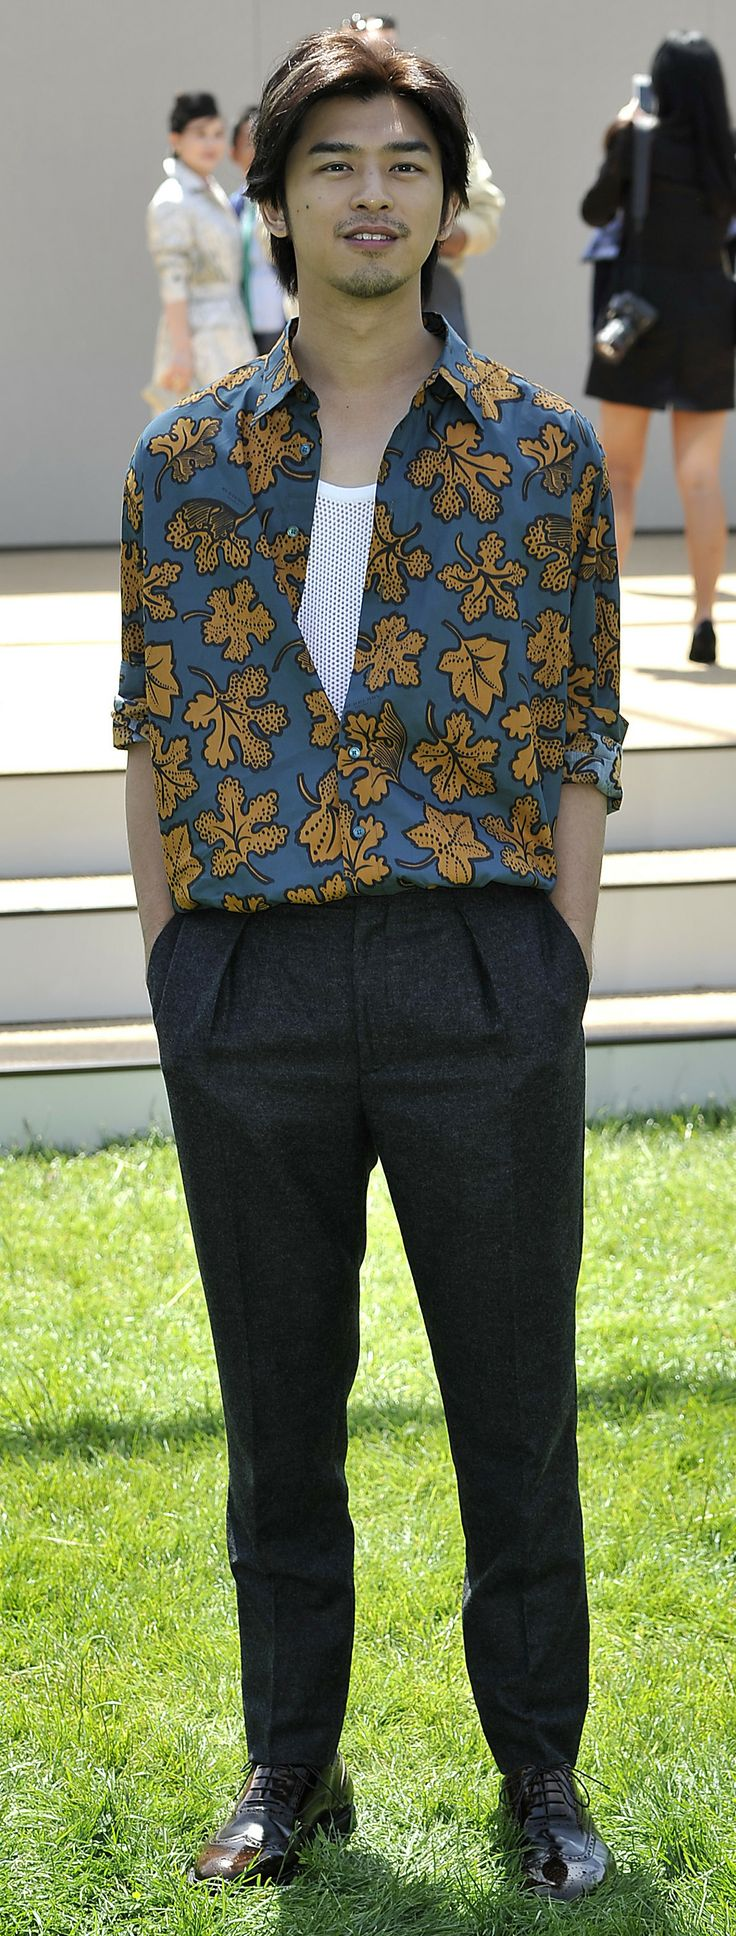 Taiwanese actor Bolin Chen wearing Burberry at the Burberry Prorsum  Menswear S/S15 Show in